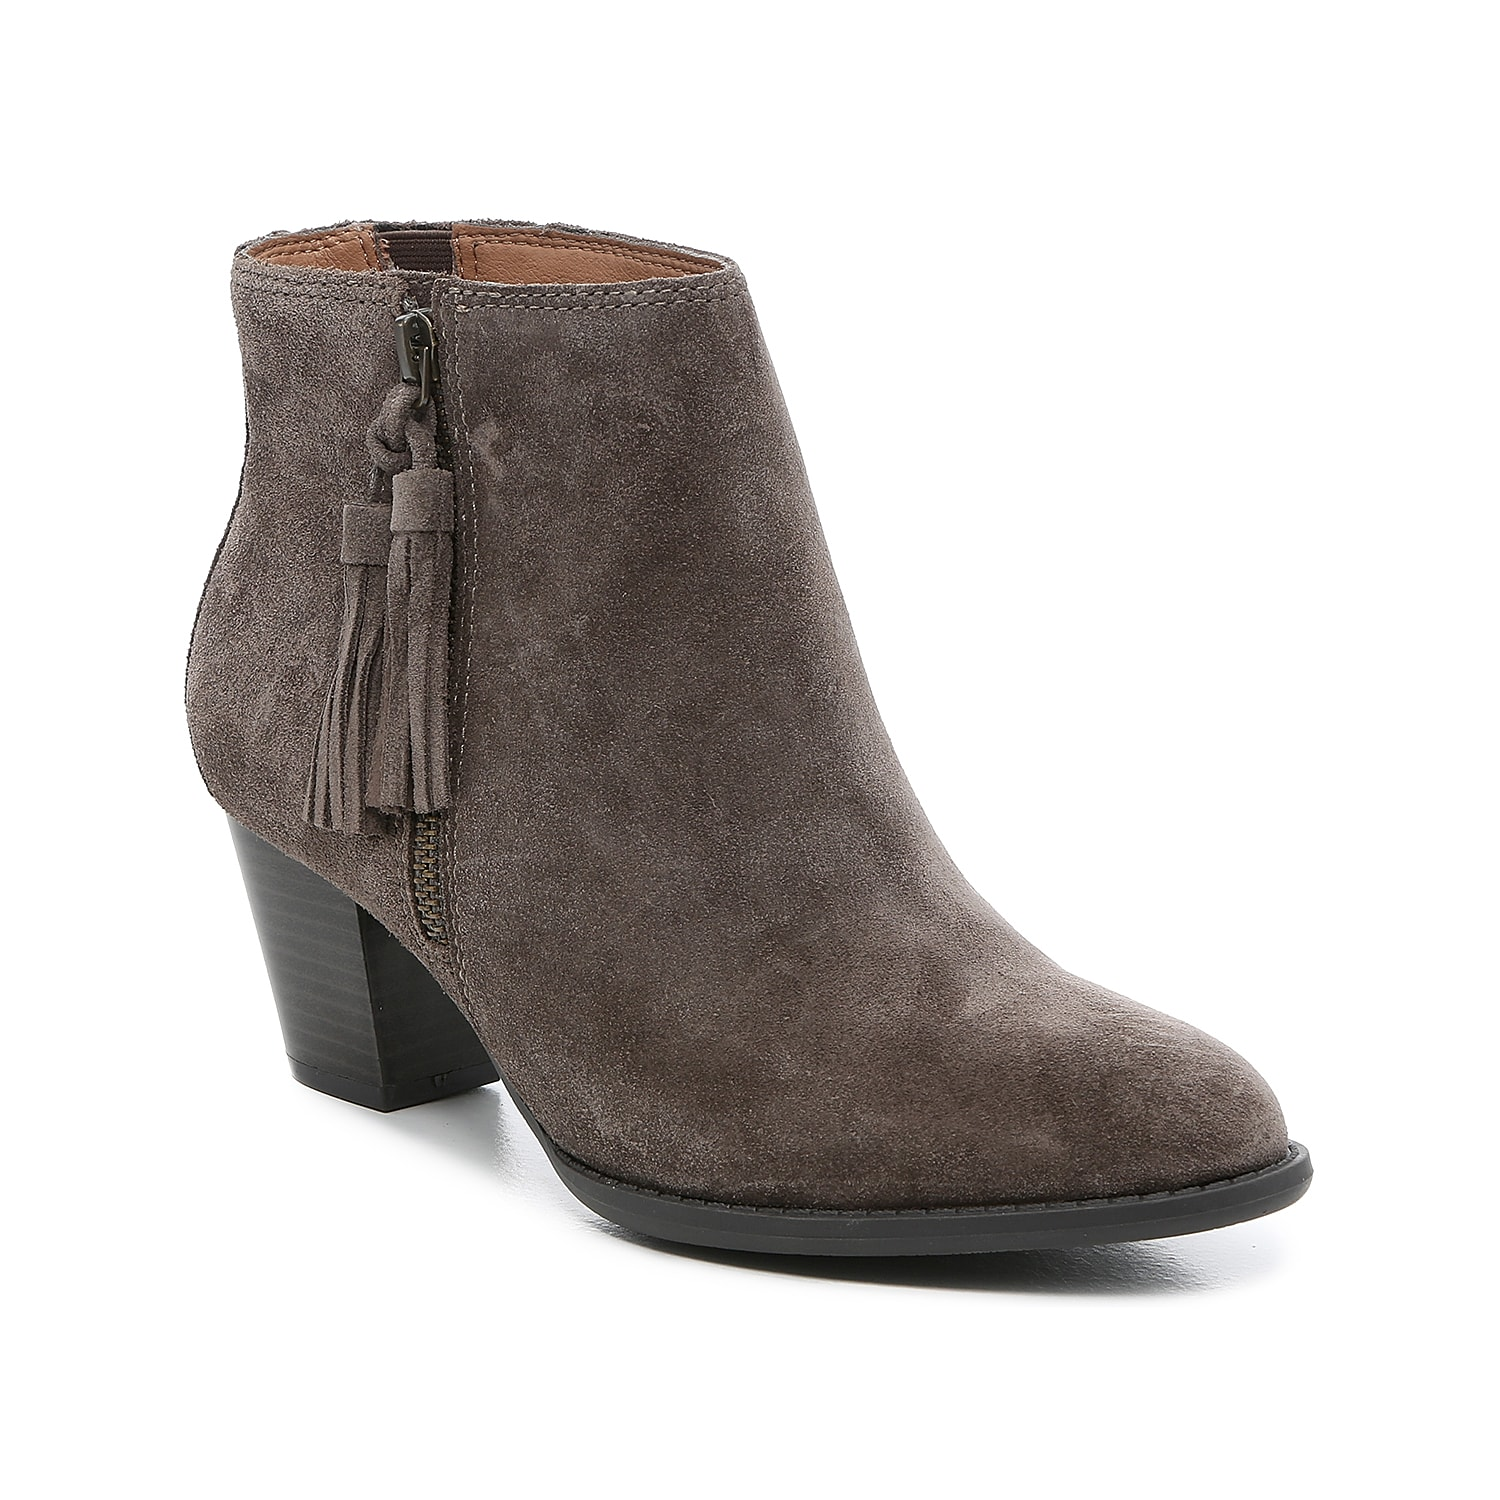 A simple suede pair, the Madeline ankle bootie from Vionic makes the most of your wardrobe with neutral hues and a modest, mid-height heel. A hidden elastic insert on the interior side provides a hint of stretch. Click here for Boot Measuring Guide.